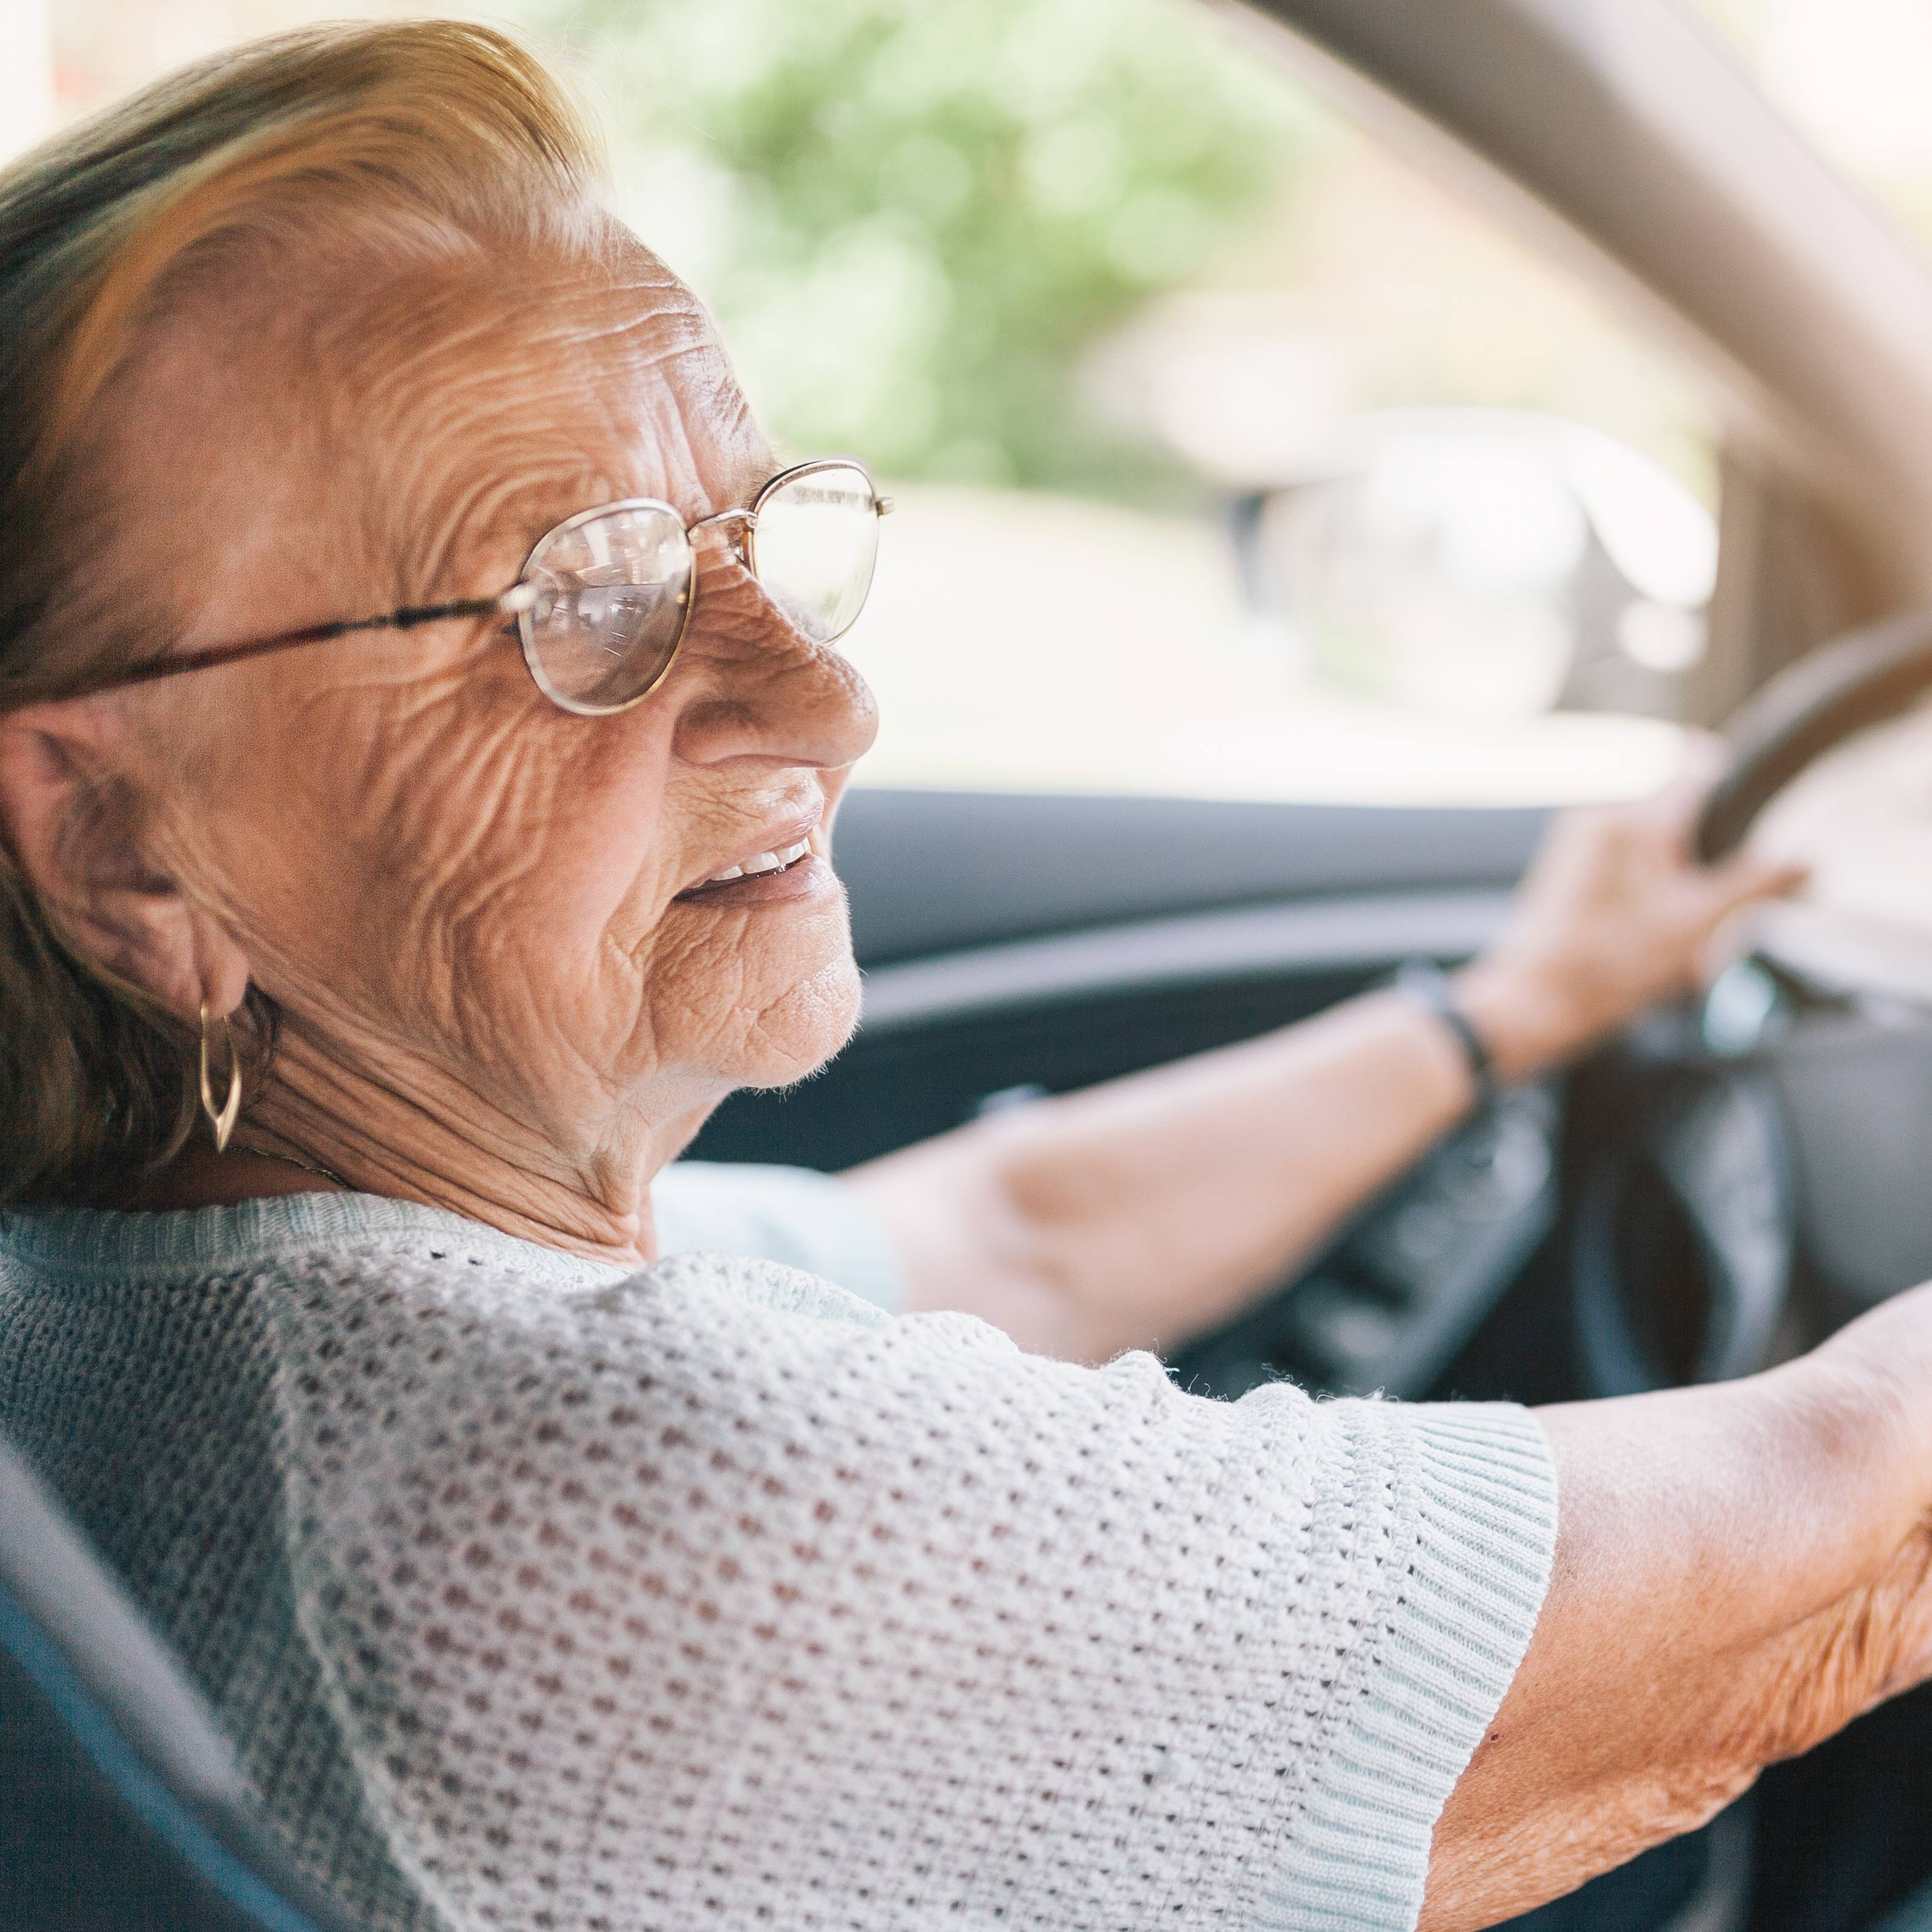 Elderly woman driving car